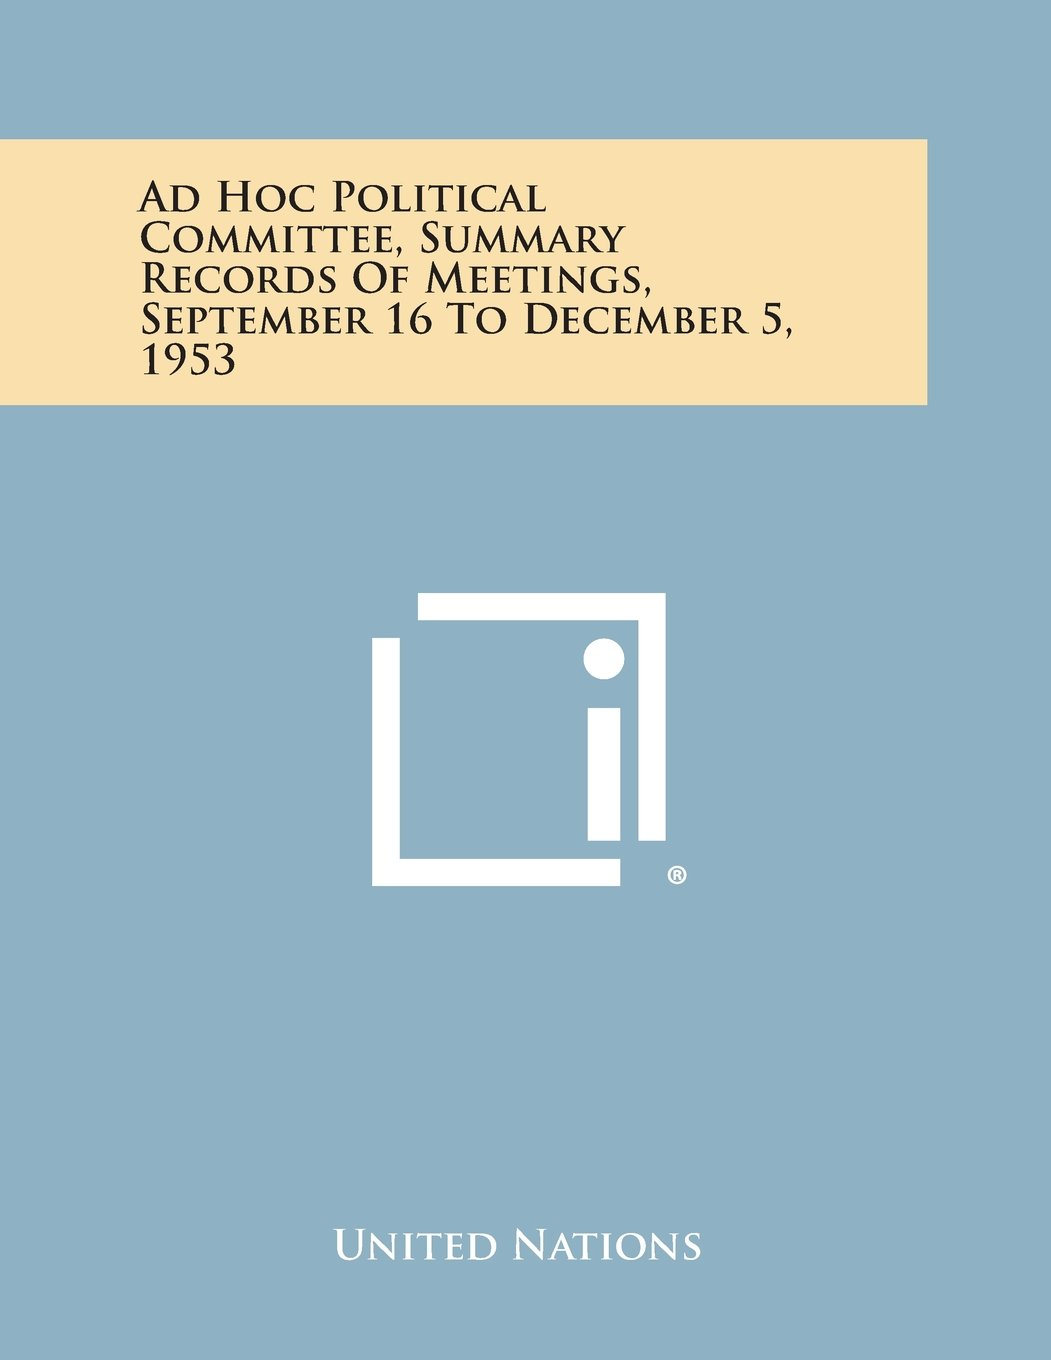 Ad Hoc Political Committee, Summary Records of Meetings, September 16 to December 5, 1953 PDF